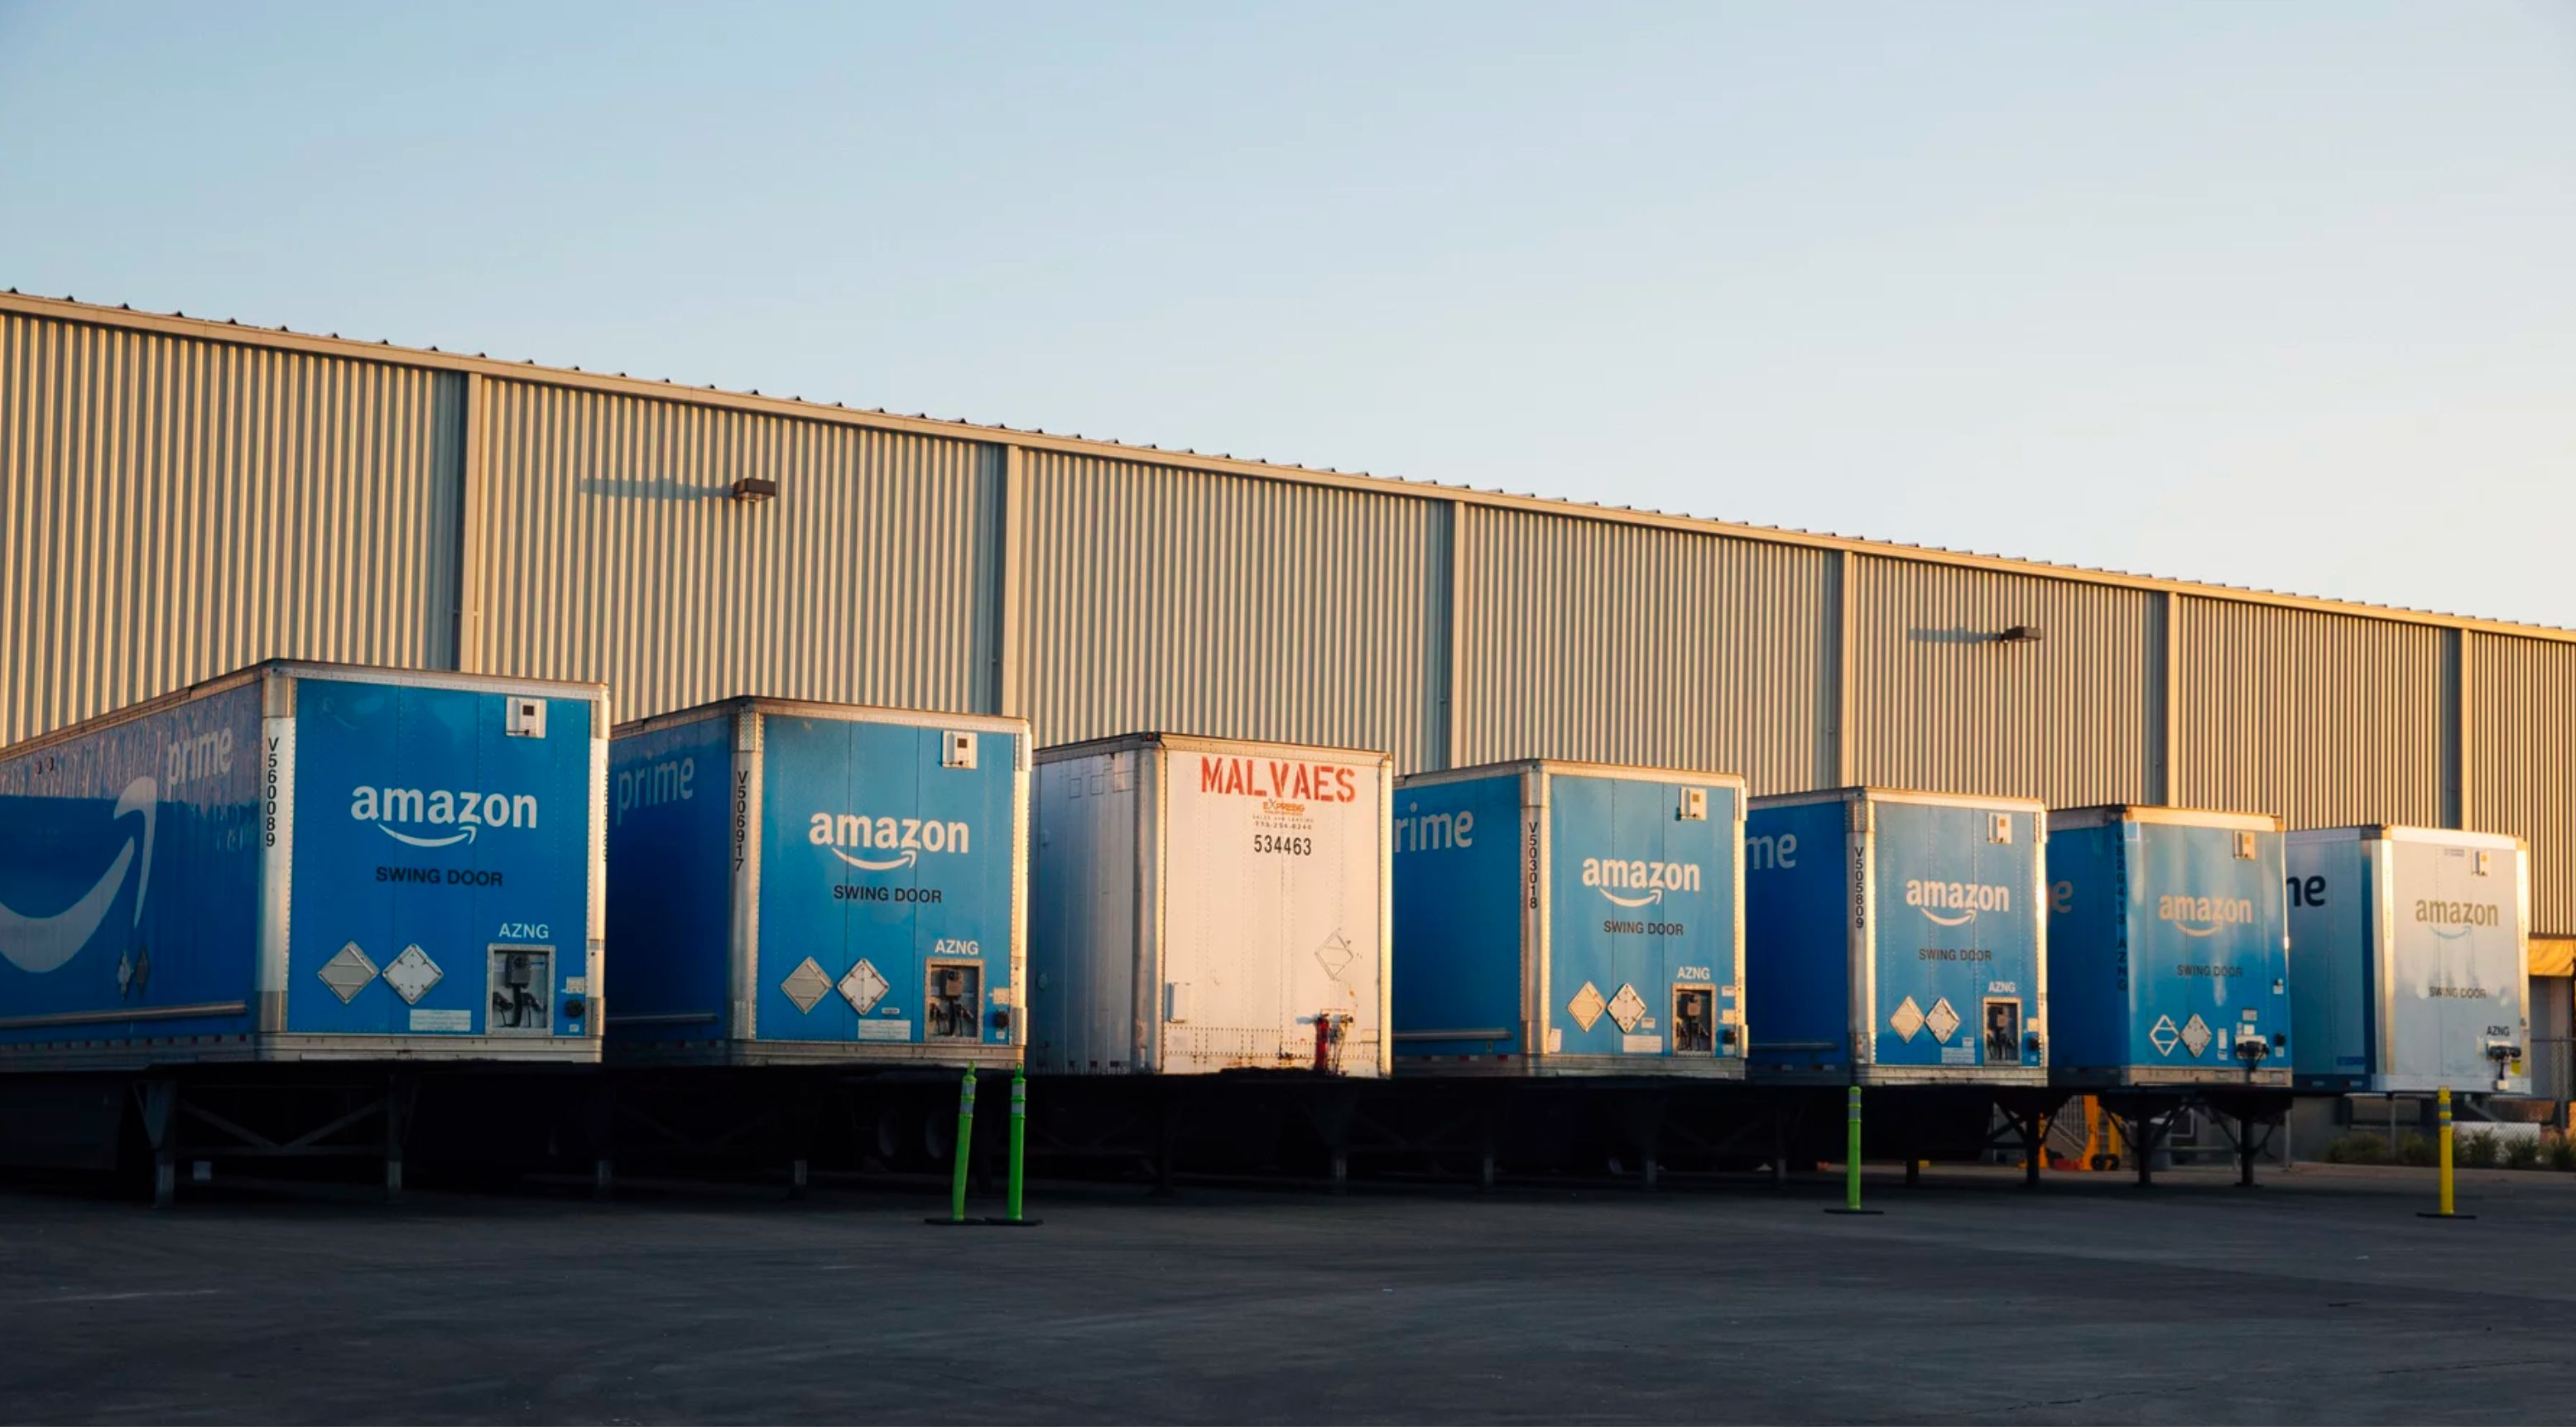 Tractor-trailers parked at an Amazon warehouse in Chicago, where they drop off goods to be picked up by fleets of cars, truck